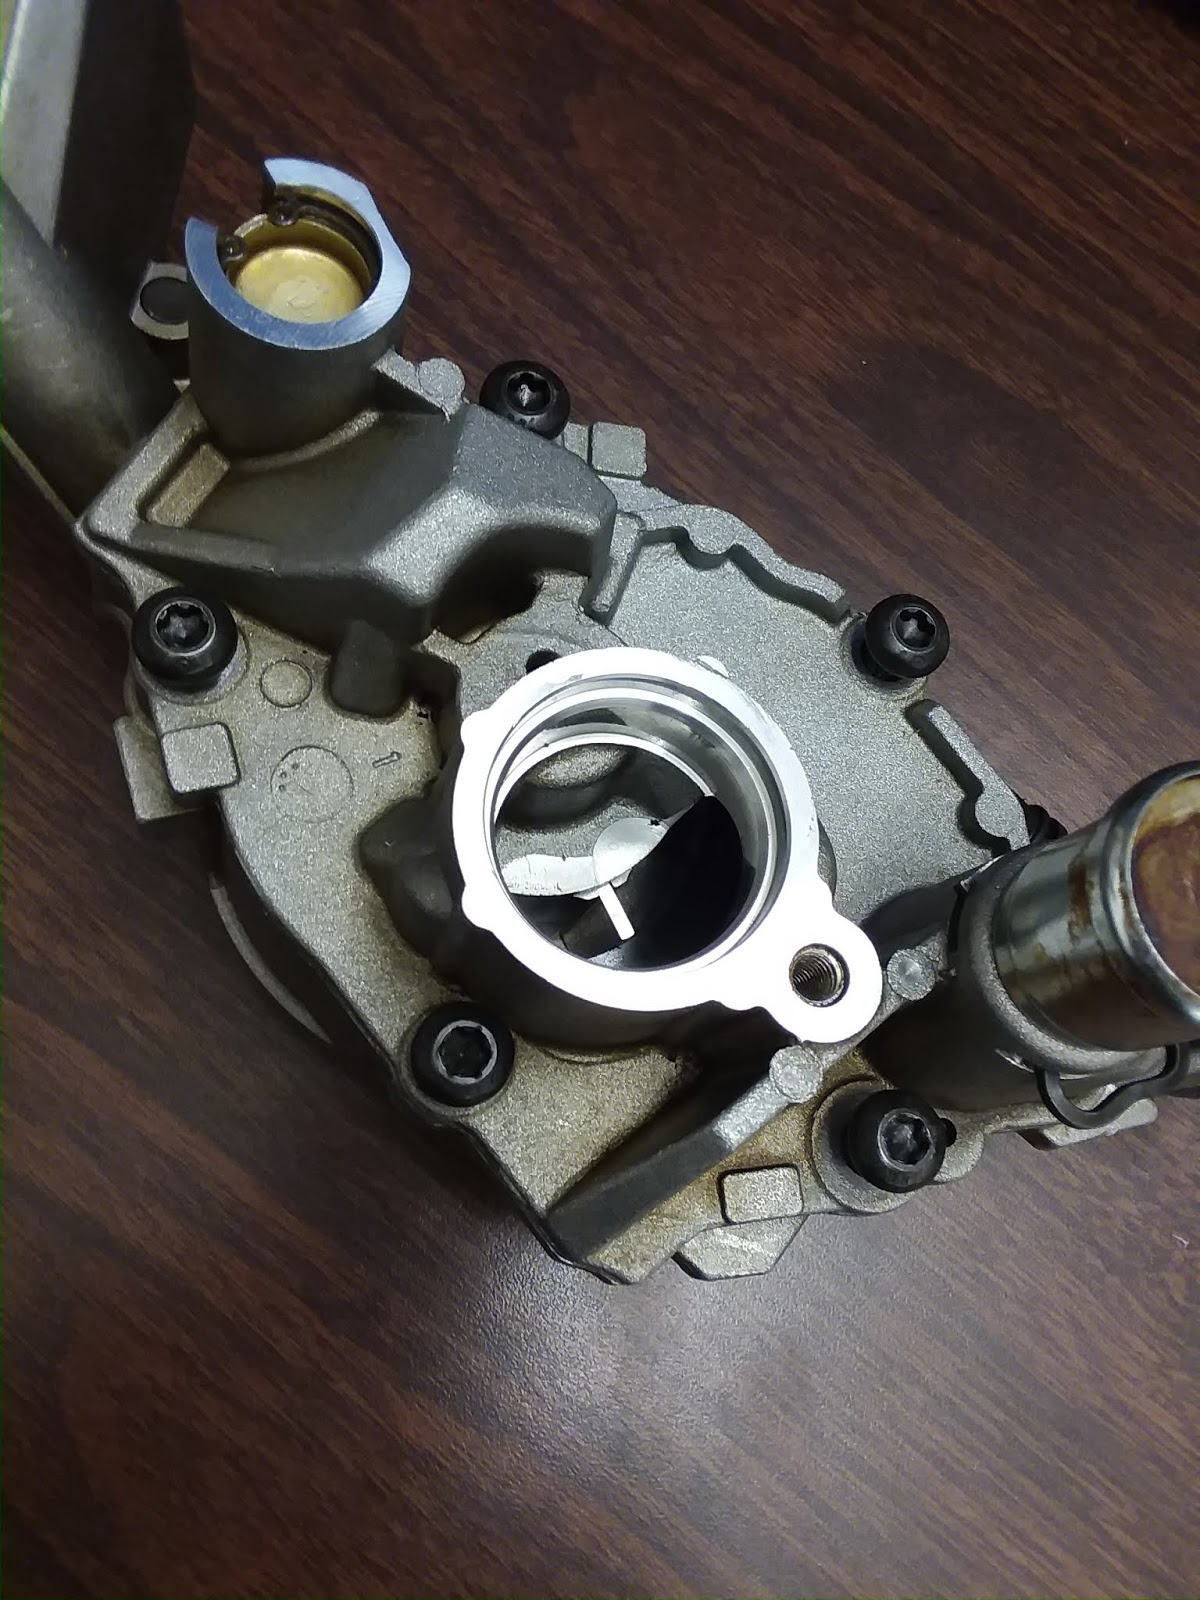 3 6L Pentastar Oil Pump Replacement for P06DD code | Nomad's JKU